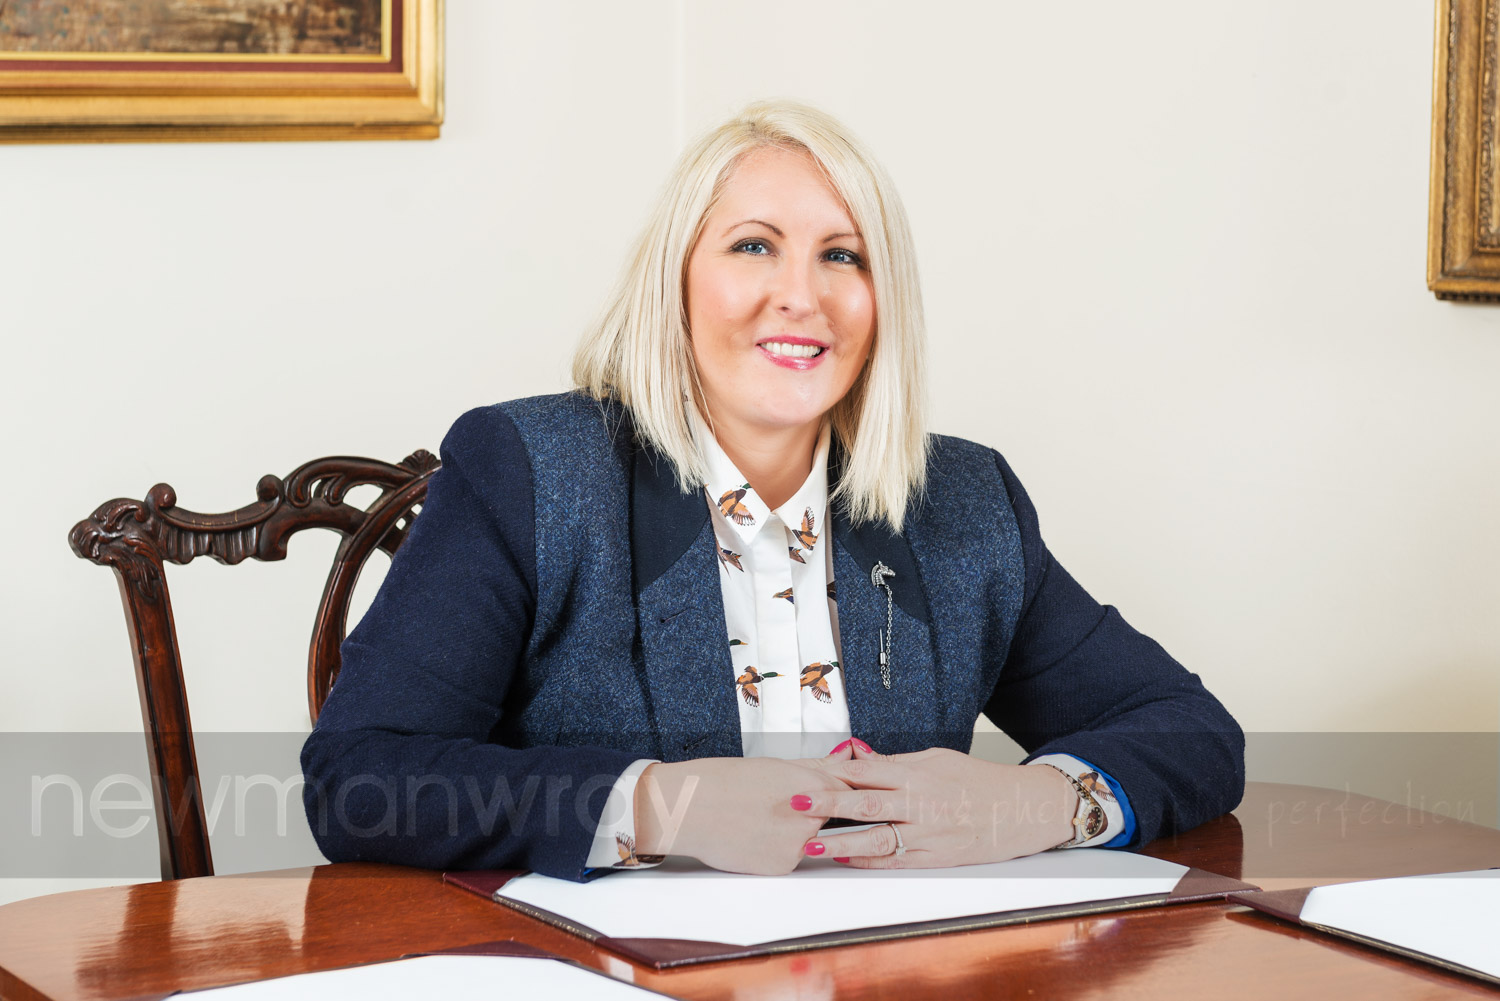 tadcaster_advertising_photography-113